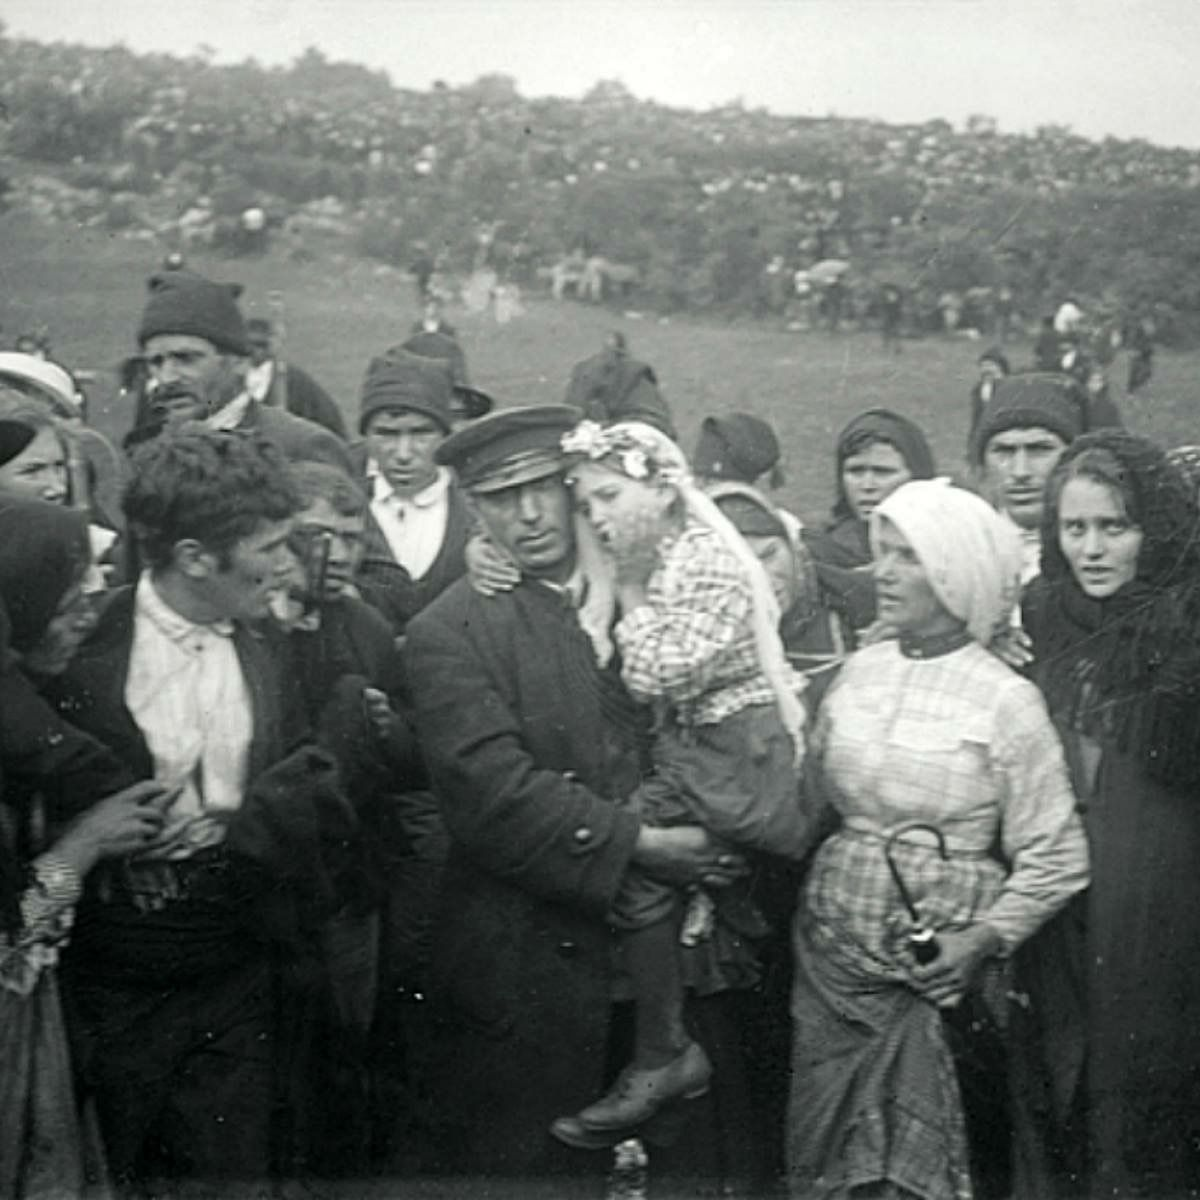 """Catholic Sat on Twitter: """"On September 13th, 1917, the Blessed Virgin Mary told the three Shepherd Children of Fatima to """"Continue to pray the Rosary to obtain the end of the war."""